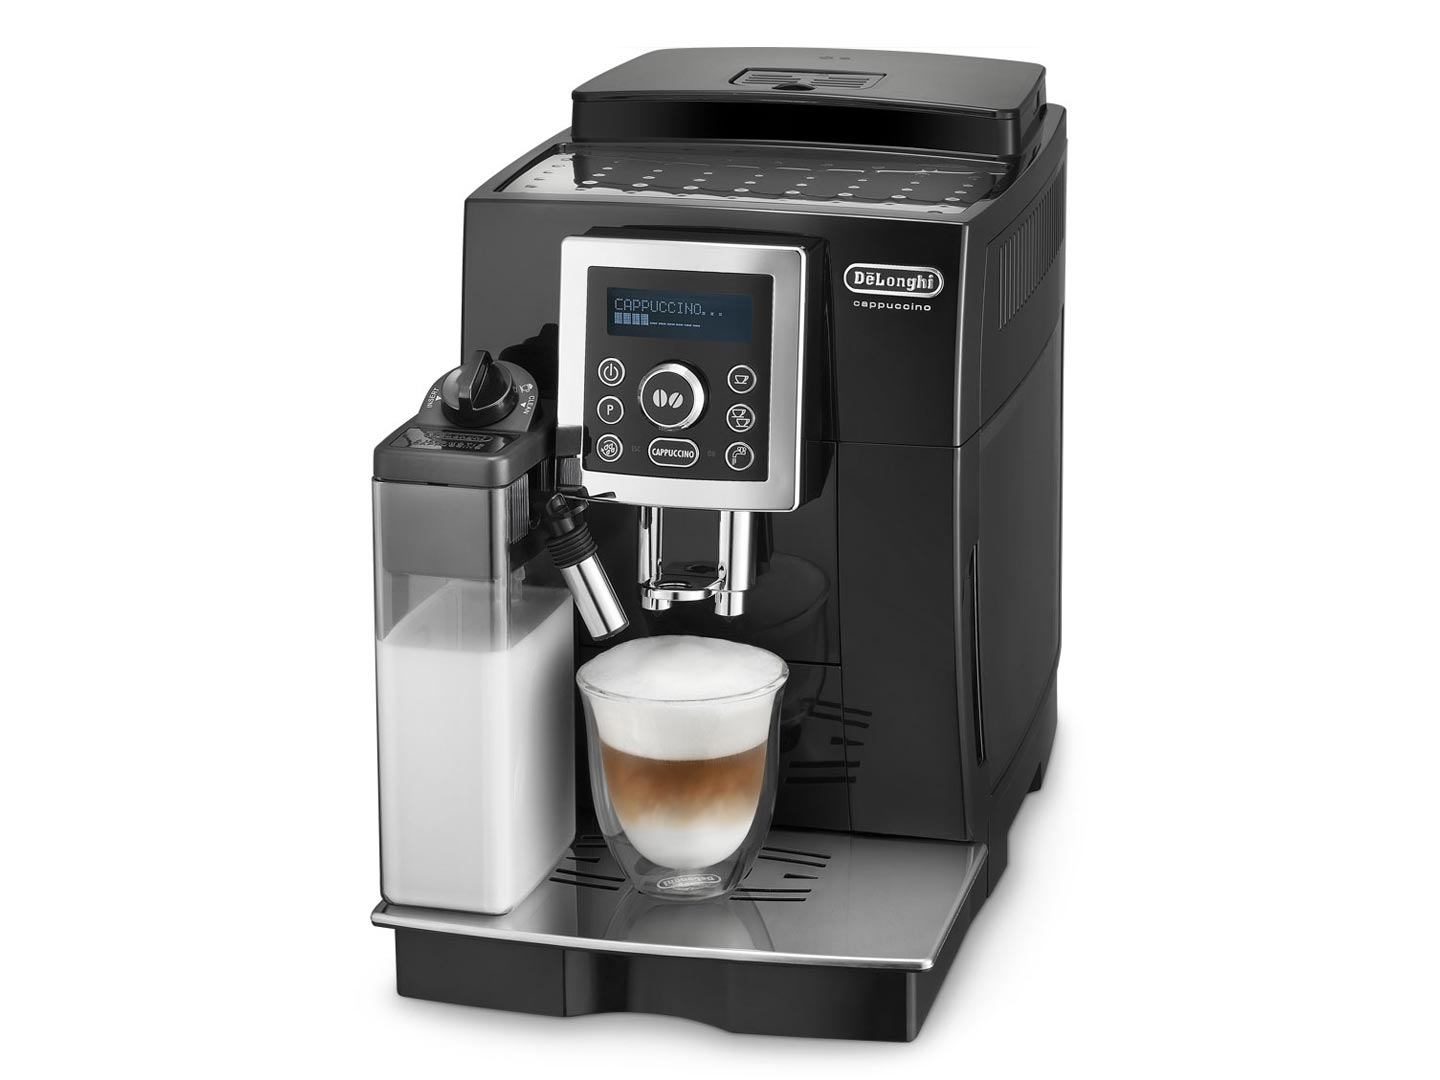 delonghi eletta cappuccino ecam 44 660 b zwart in de aanbieding kopen. Black Bedroom Furniture Sets. Home Design Ideas